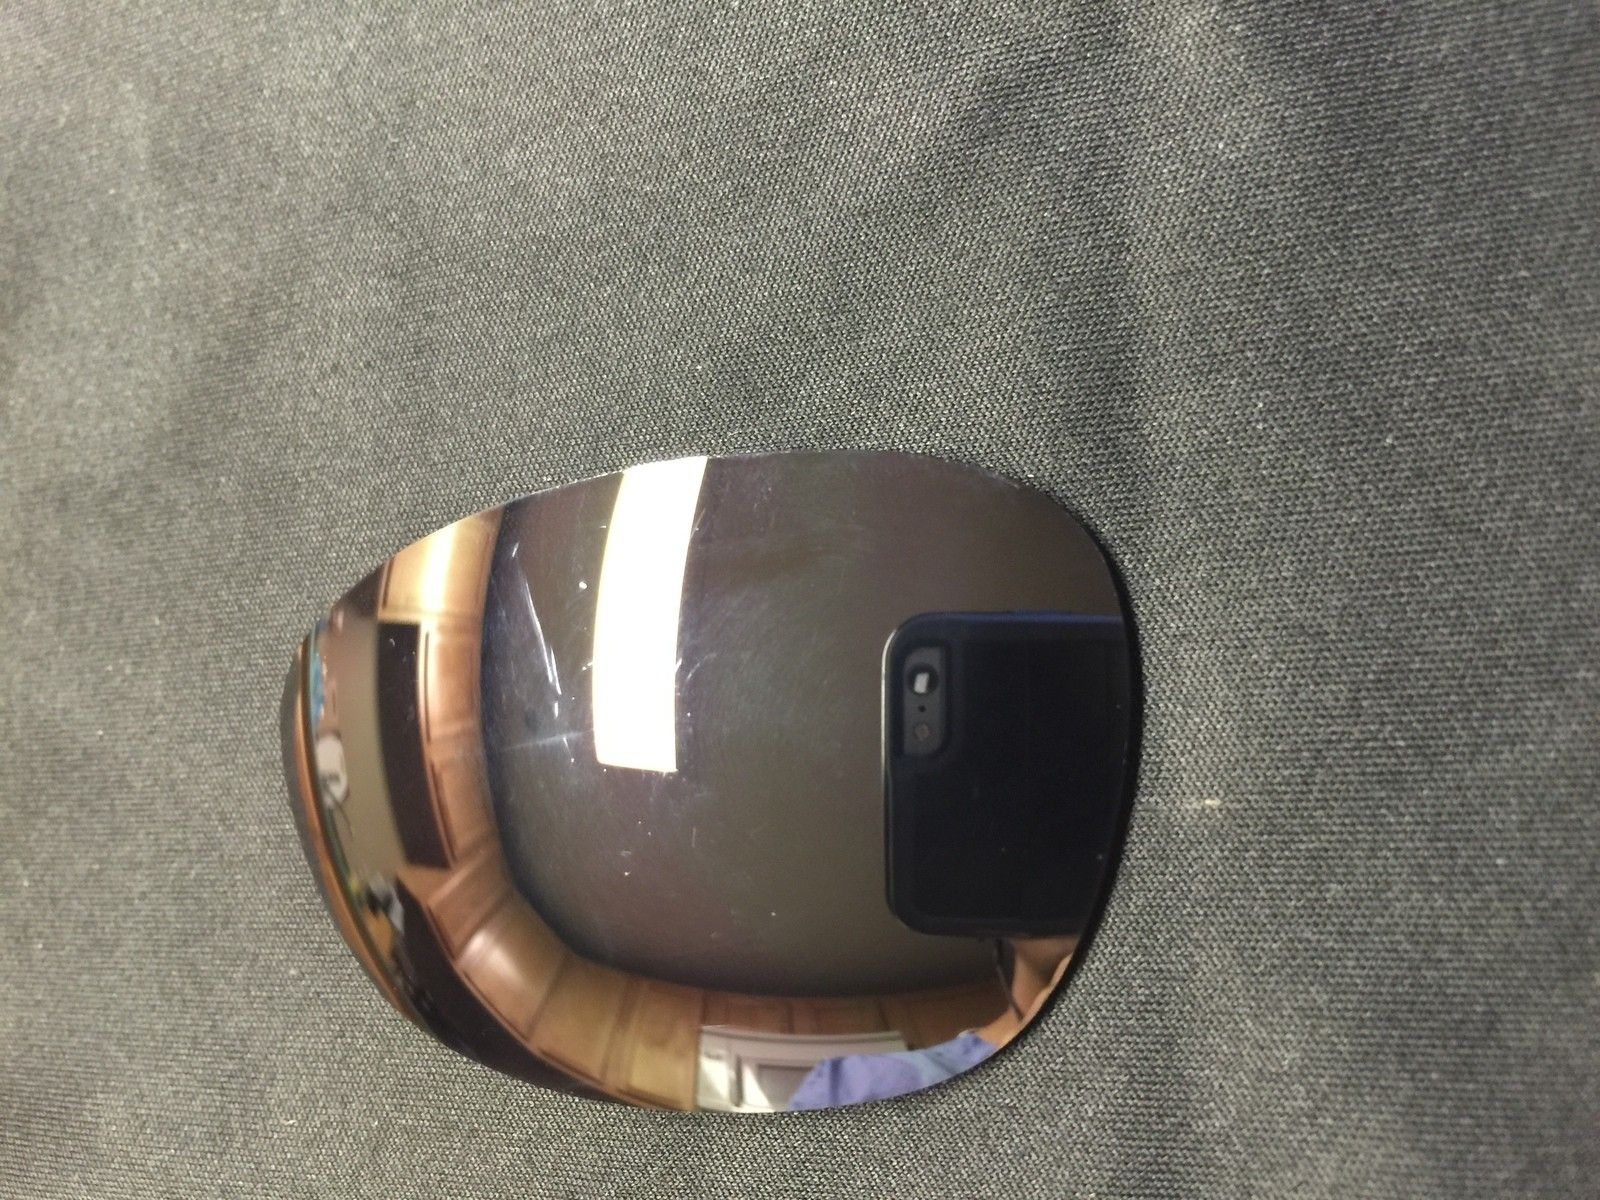 Used XX BI lens ***price dropped*** - image8.JPG